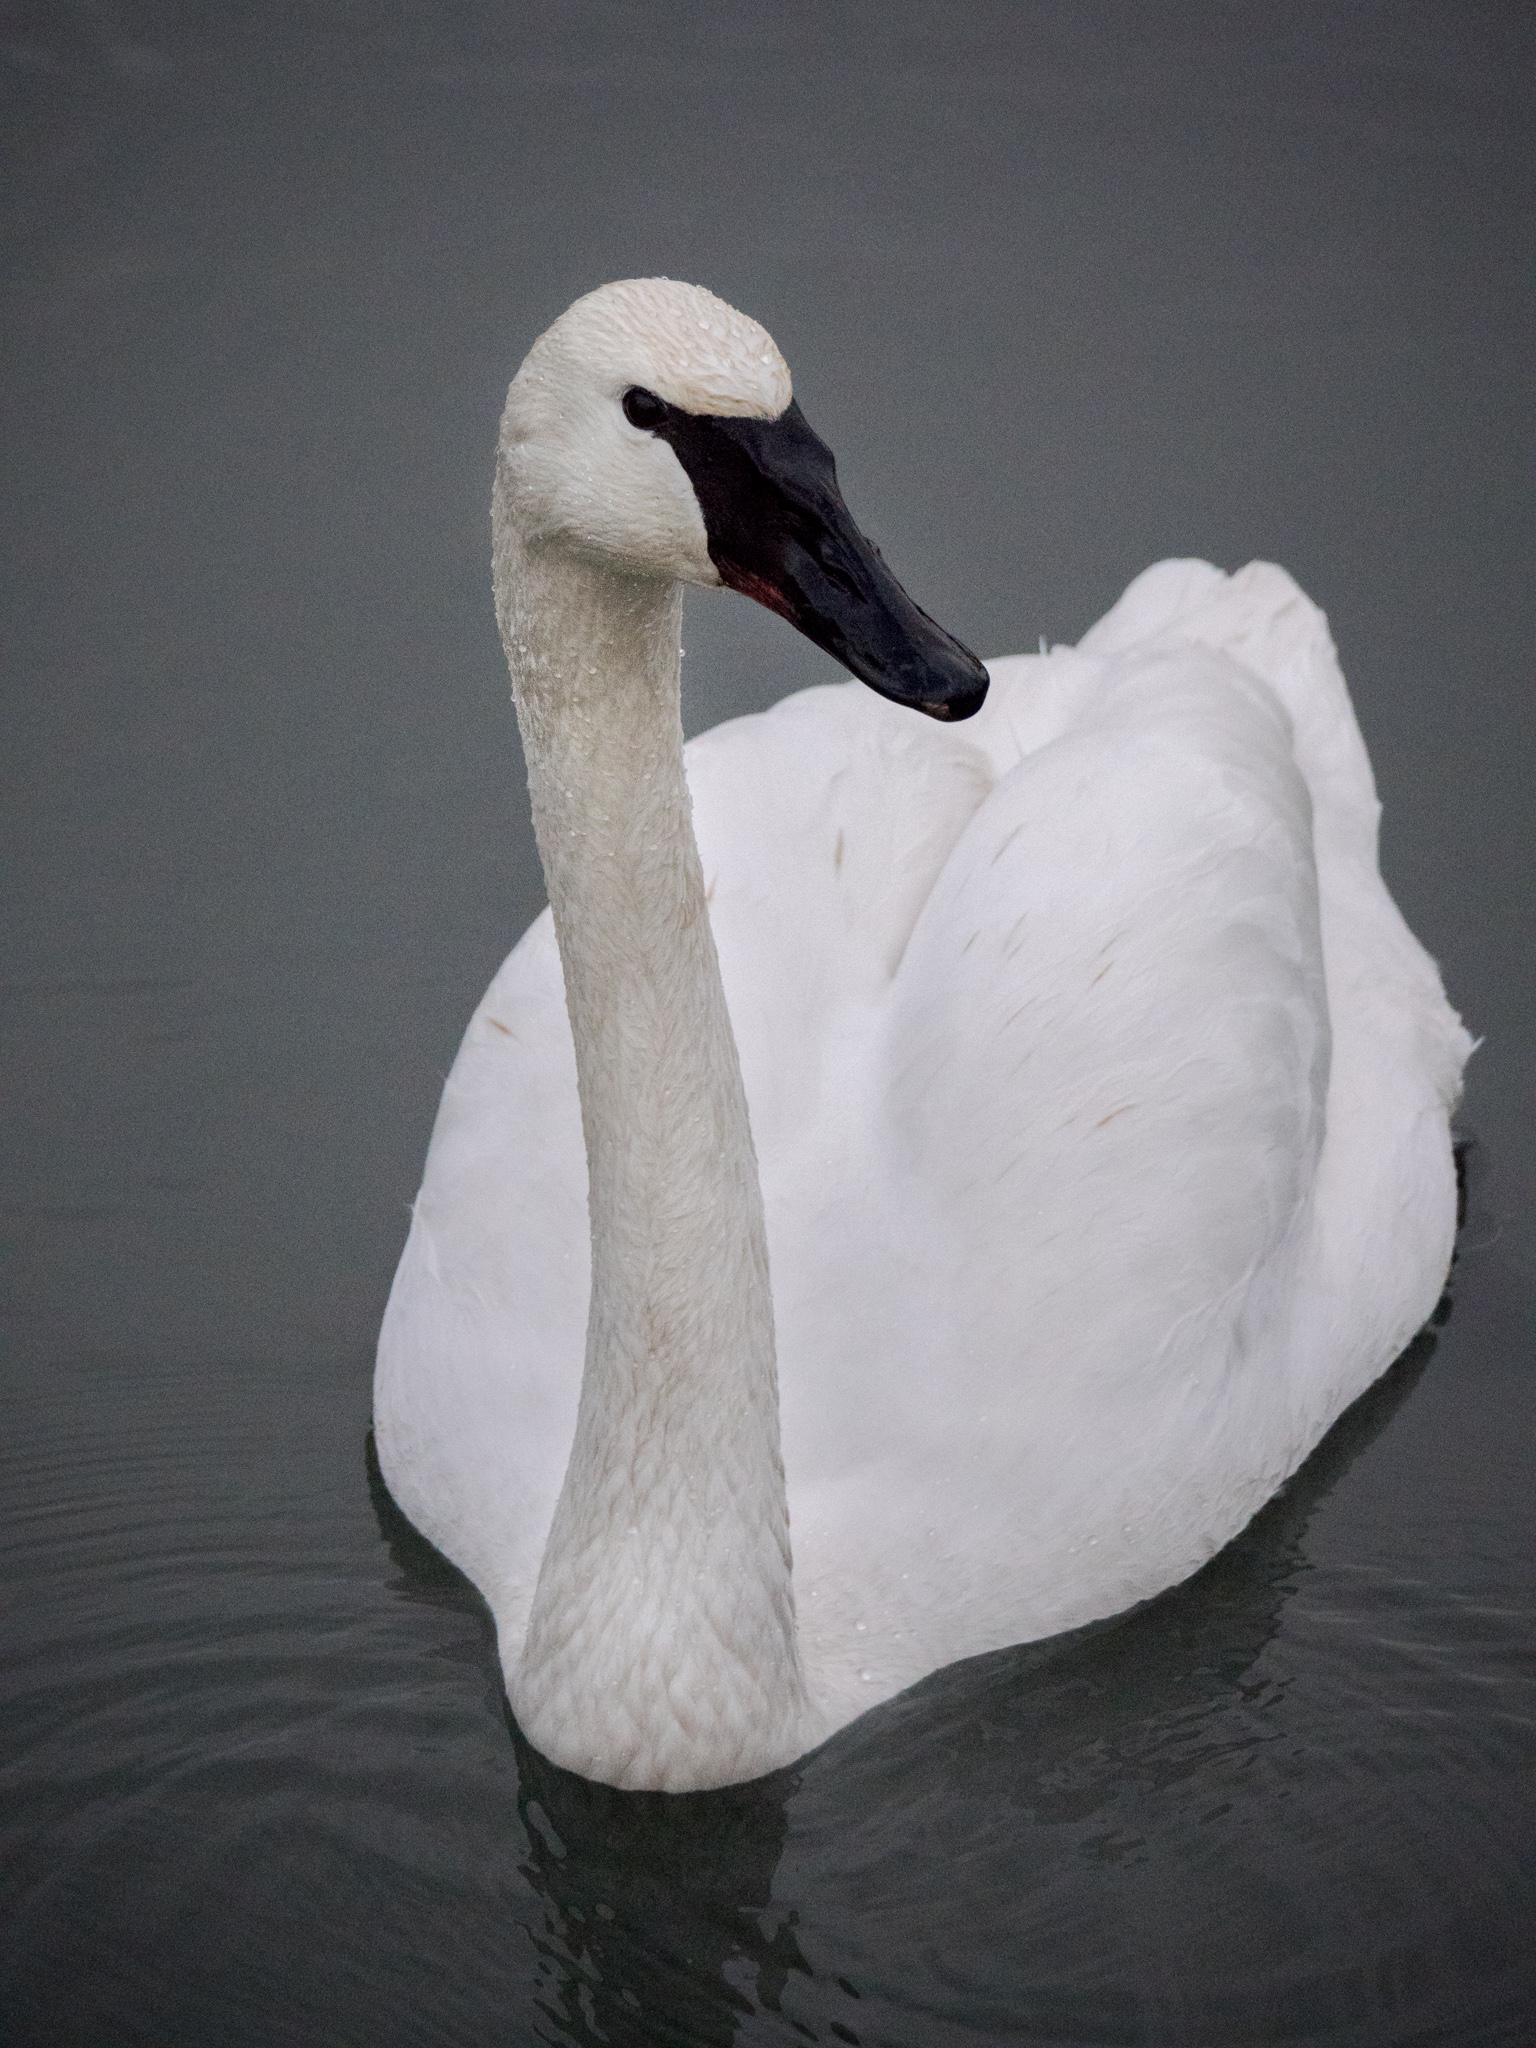 A quizzical look from one of the Trumpeter Swans